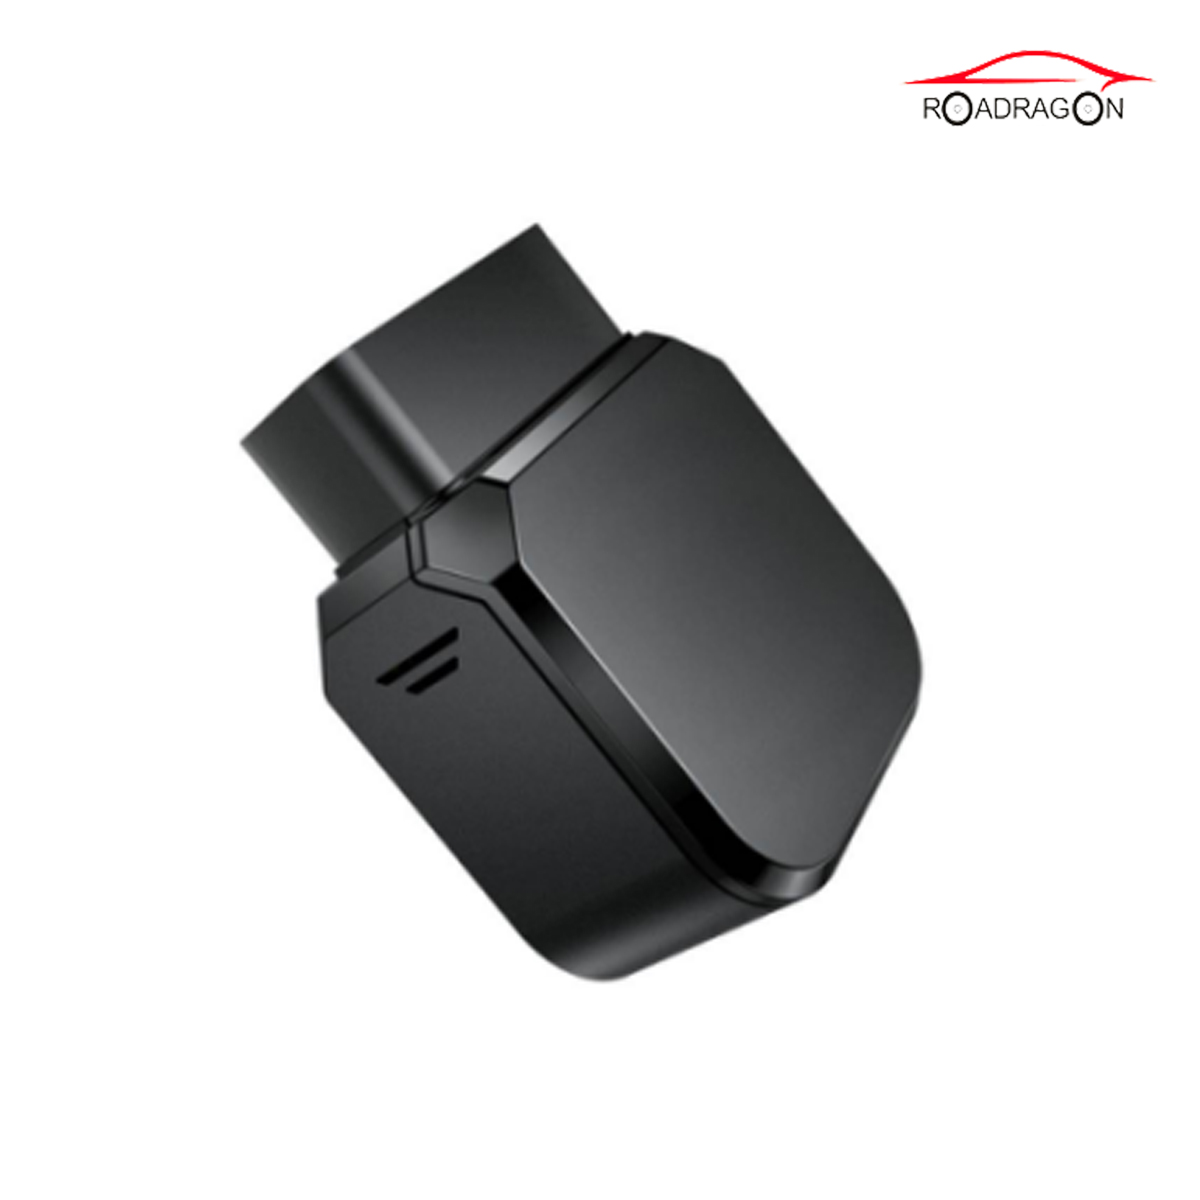 2G obd gps tracker, fleet management system, obdii tracker, 2G vehicle tracking, obd2 gps tracker Featured Image